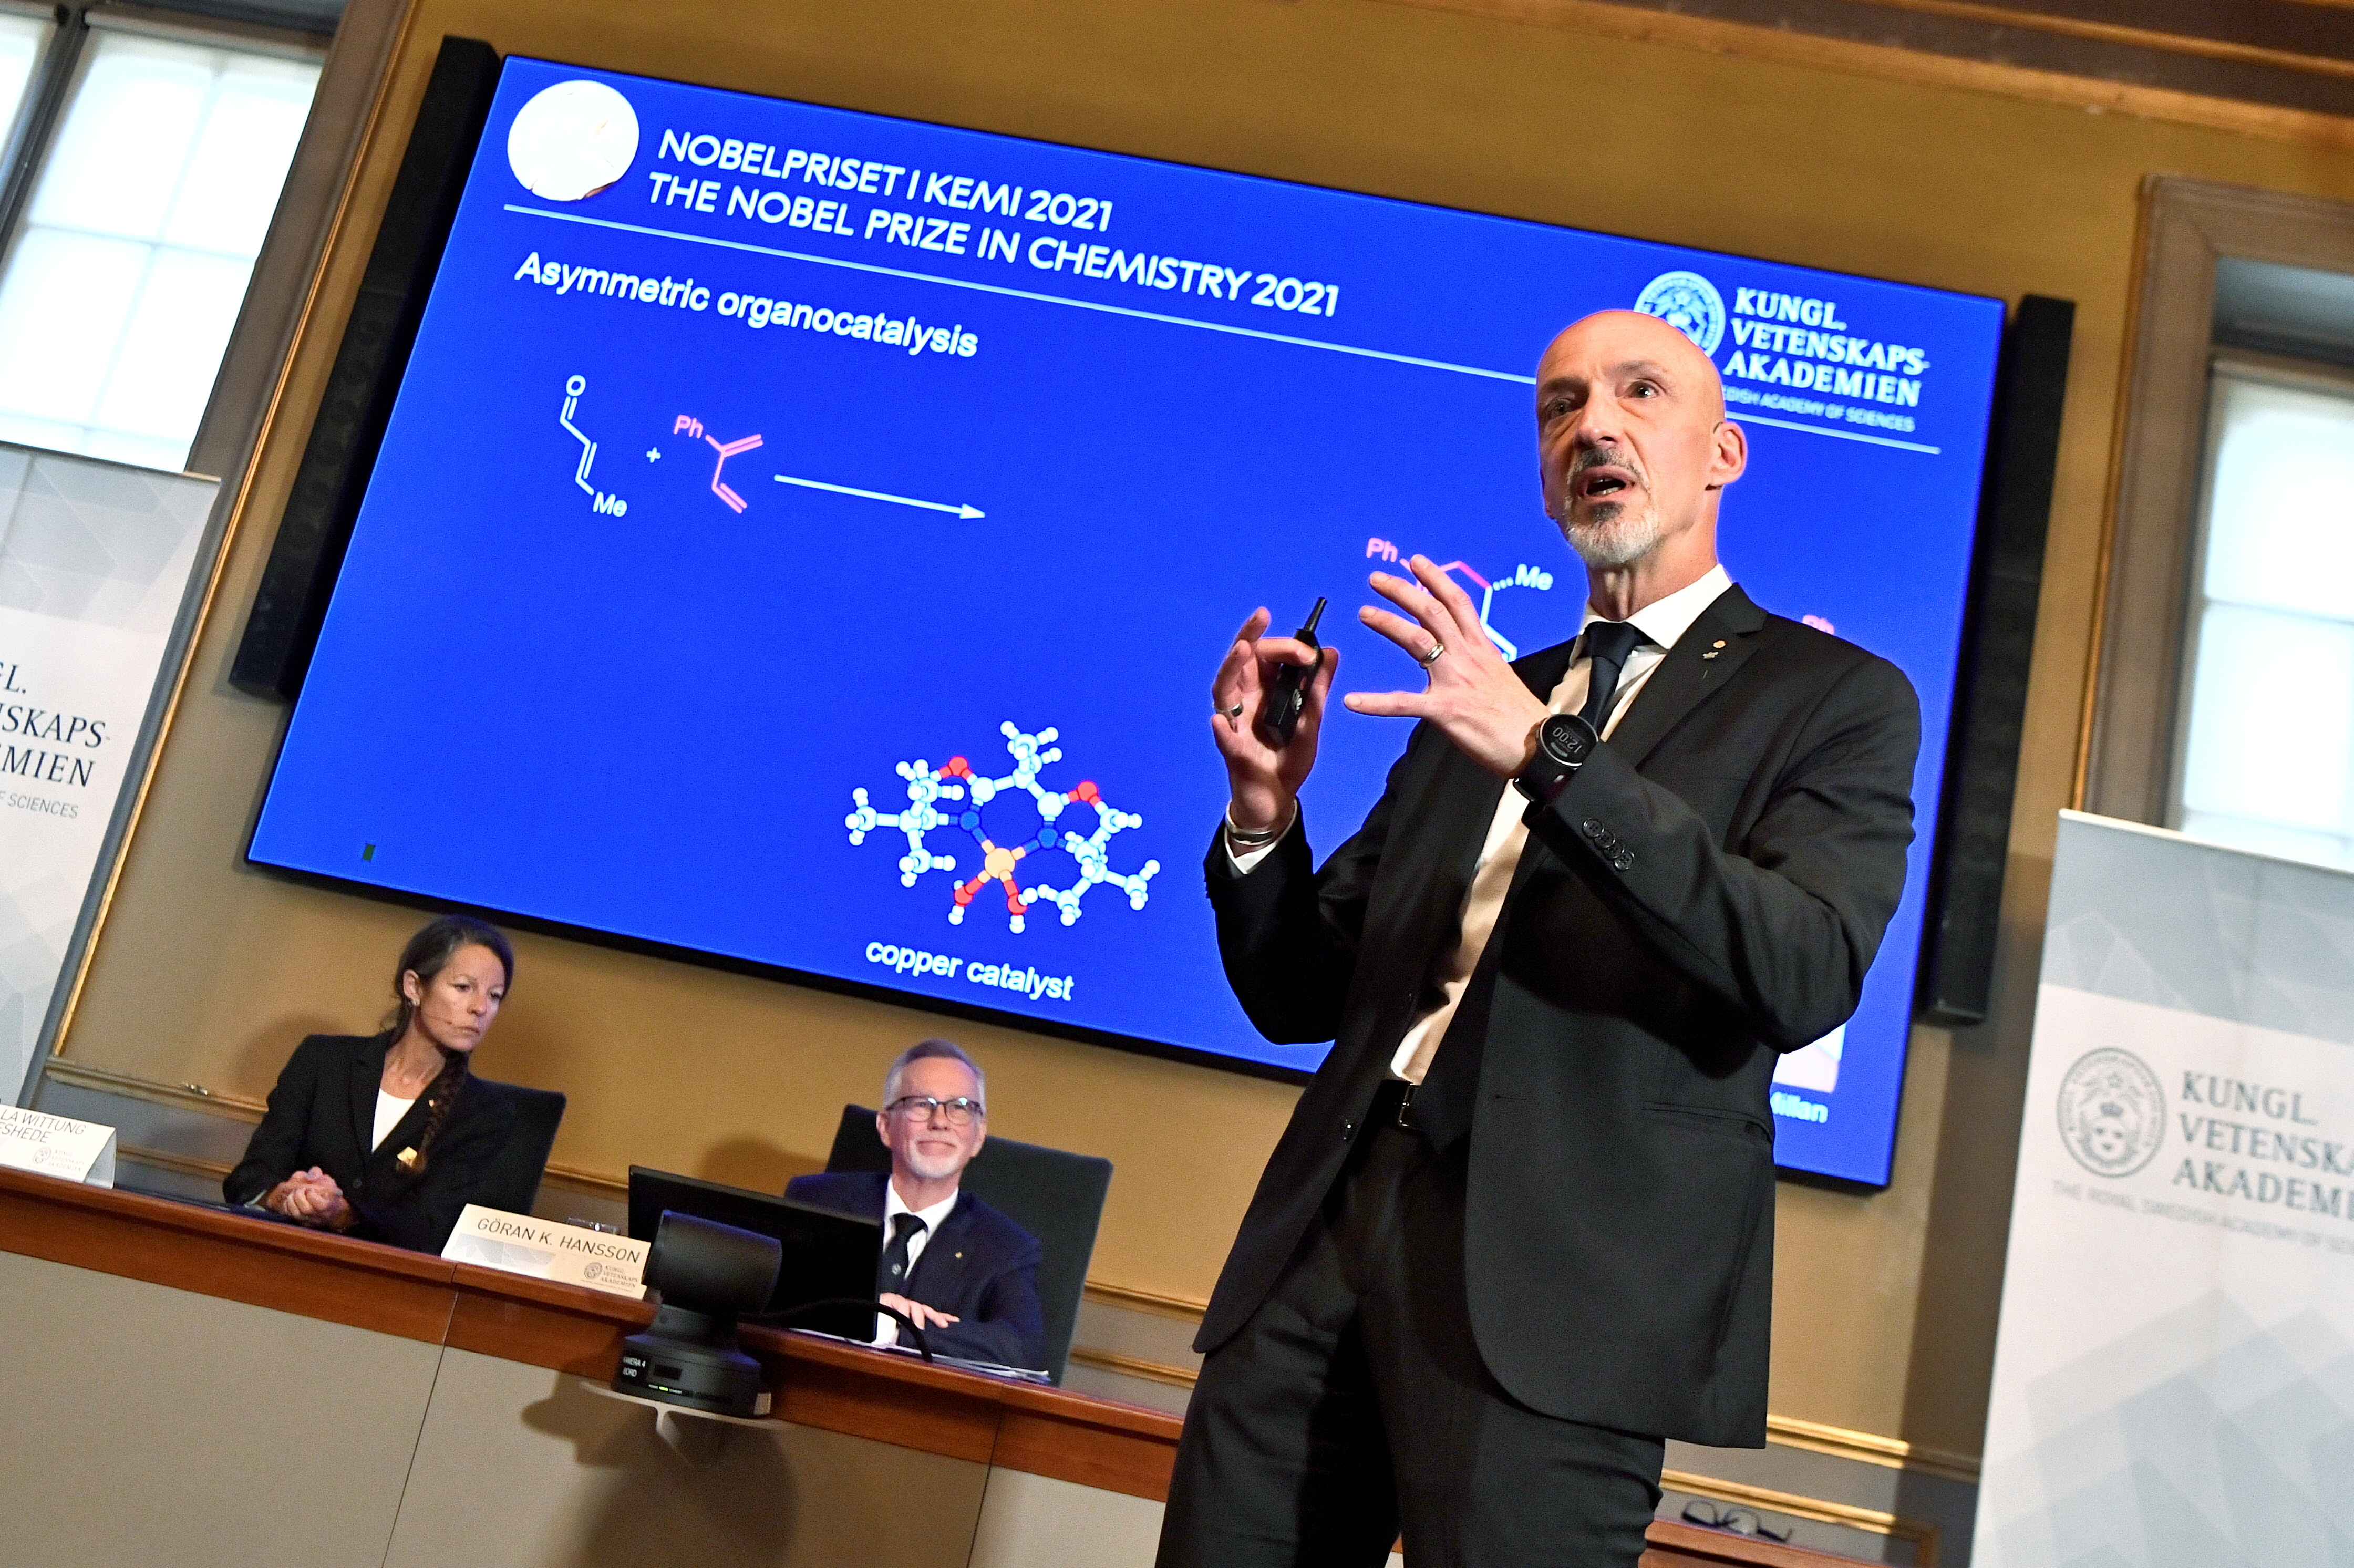 Member of the Nobel Committee for Chemistry Peter Somfai, speaks during the announcement of the 2021 Nobel Prize in Chemistry winners Benjamin List and David MacMillan at the Swedish Academy of Sciences in Stockholm, Sweden October 6, 2021. Claudio Bresciani/TT News Agency/via REUTERS